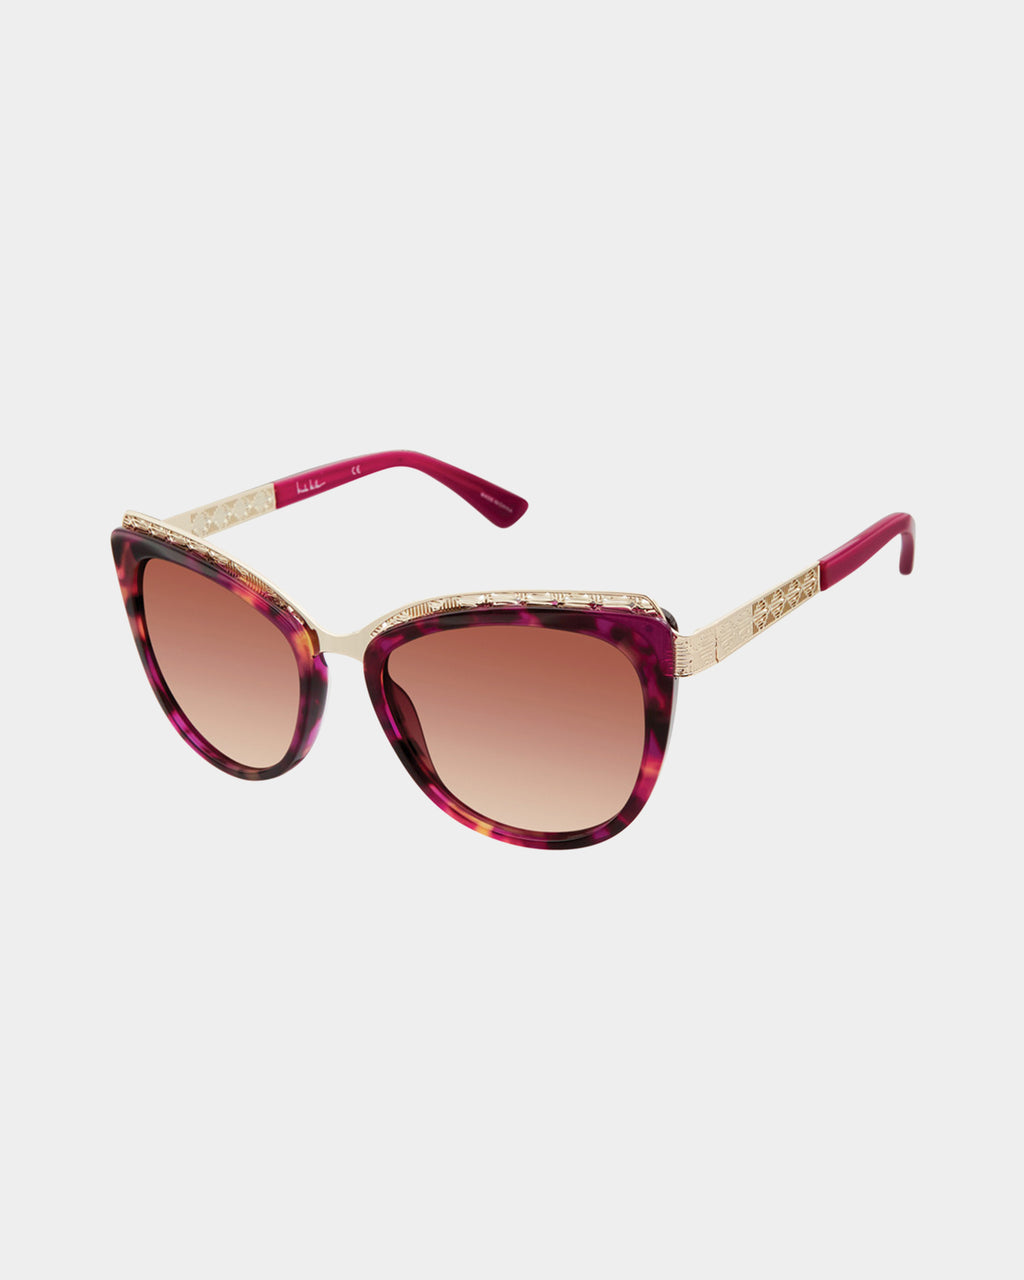 TULIP - TULIP SUNGLASSES - accessories - sunglasses - These oversized sunglasses are the perfect option for every day glamour.